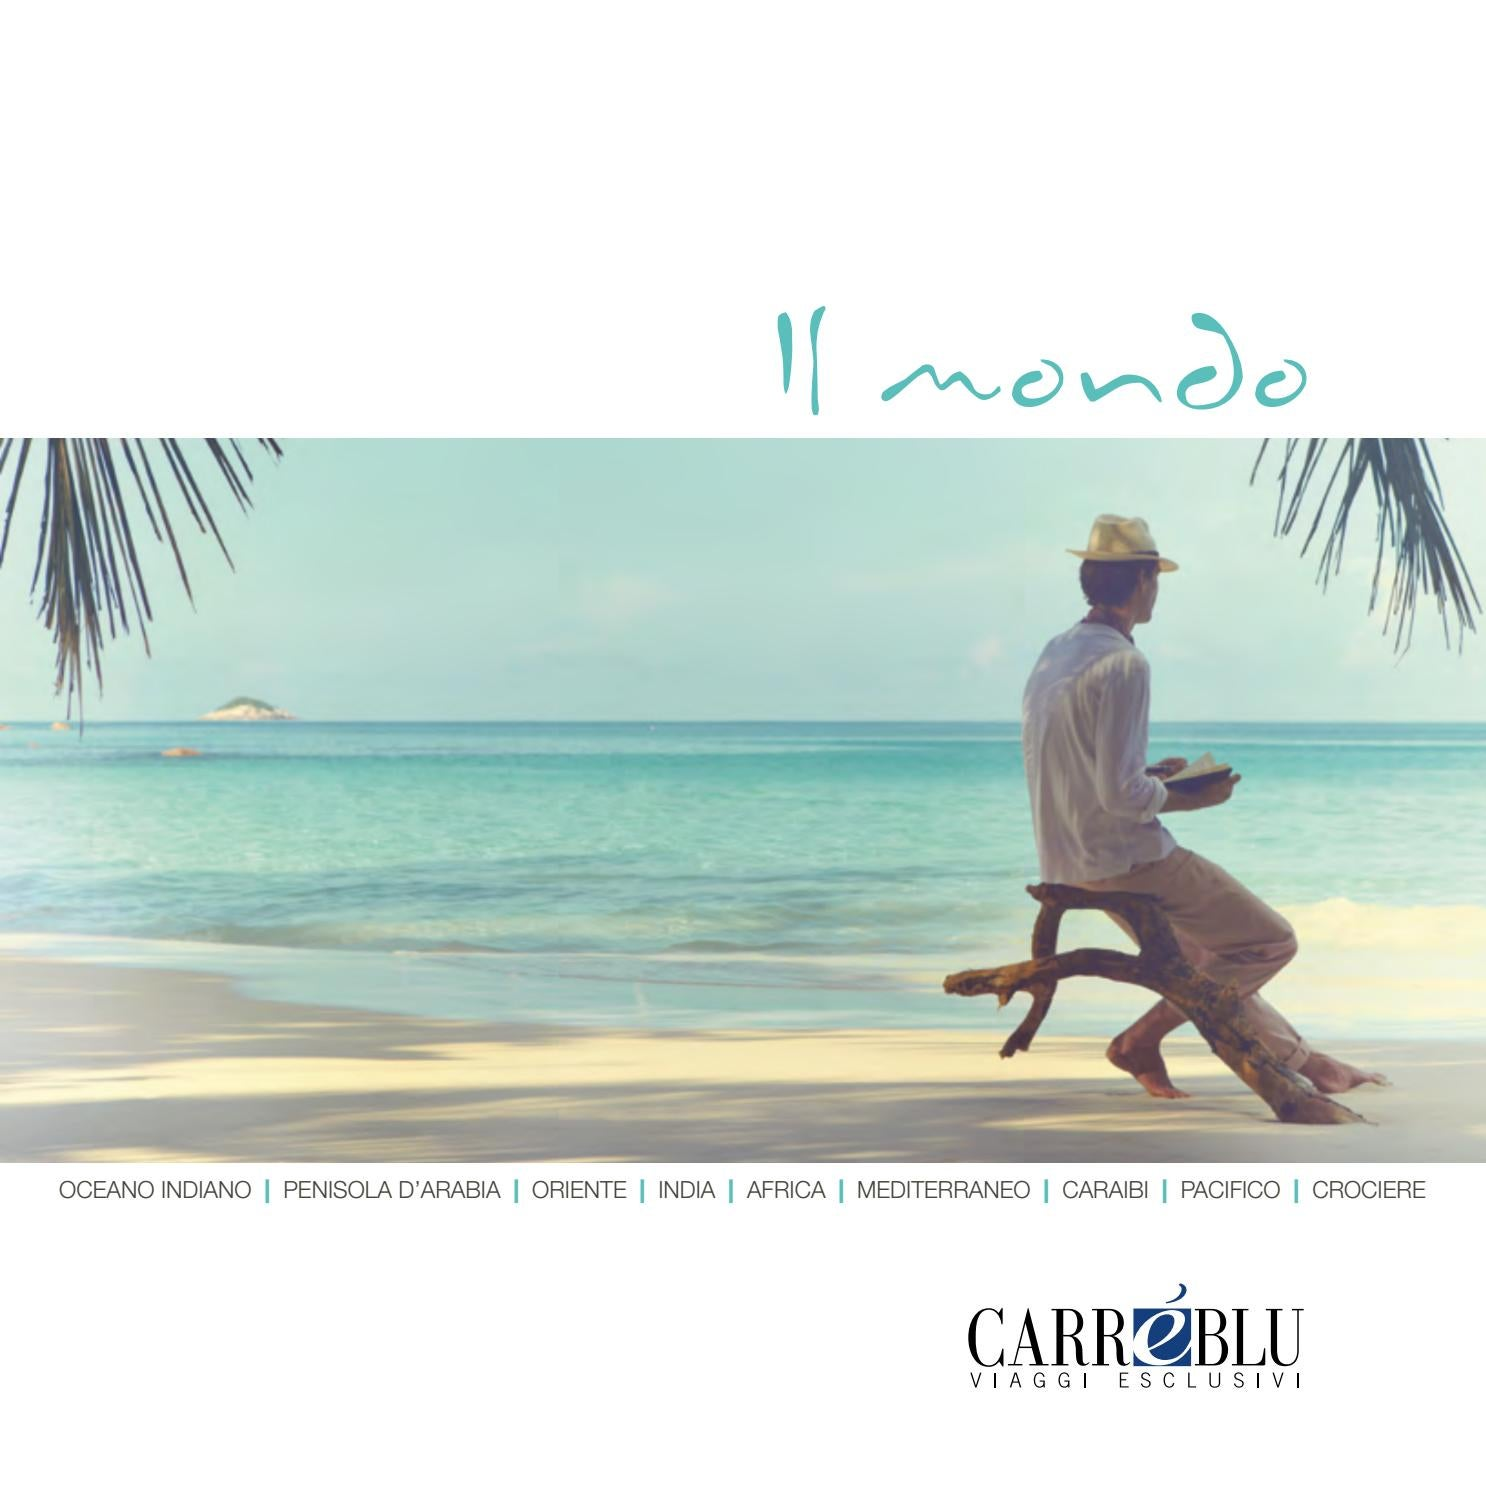 Catalogo mauritius by Carreblu - issuu 46ee572c28c5